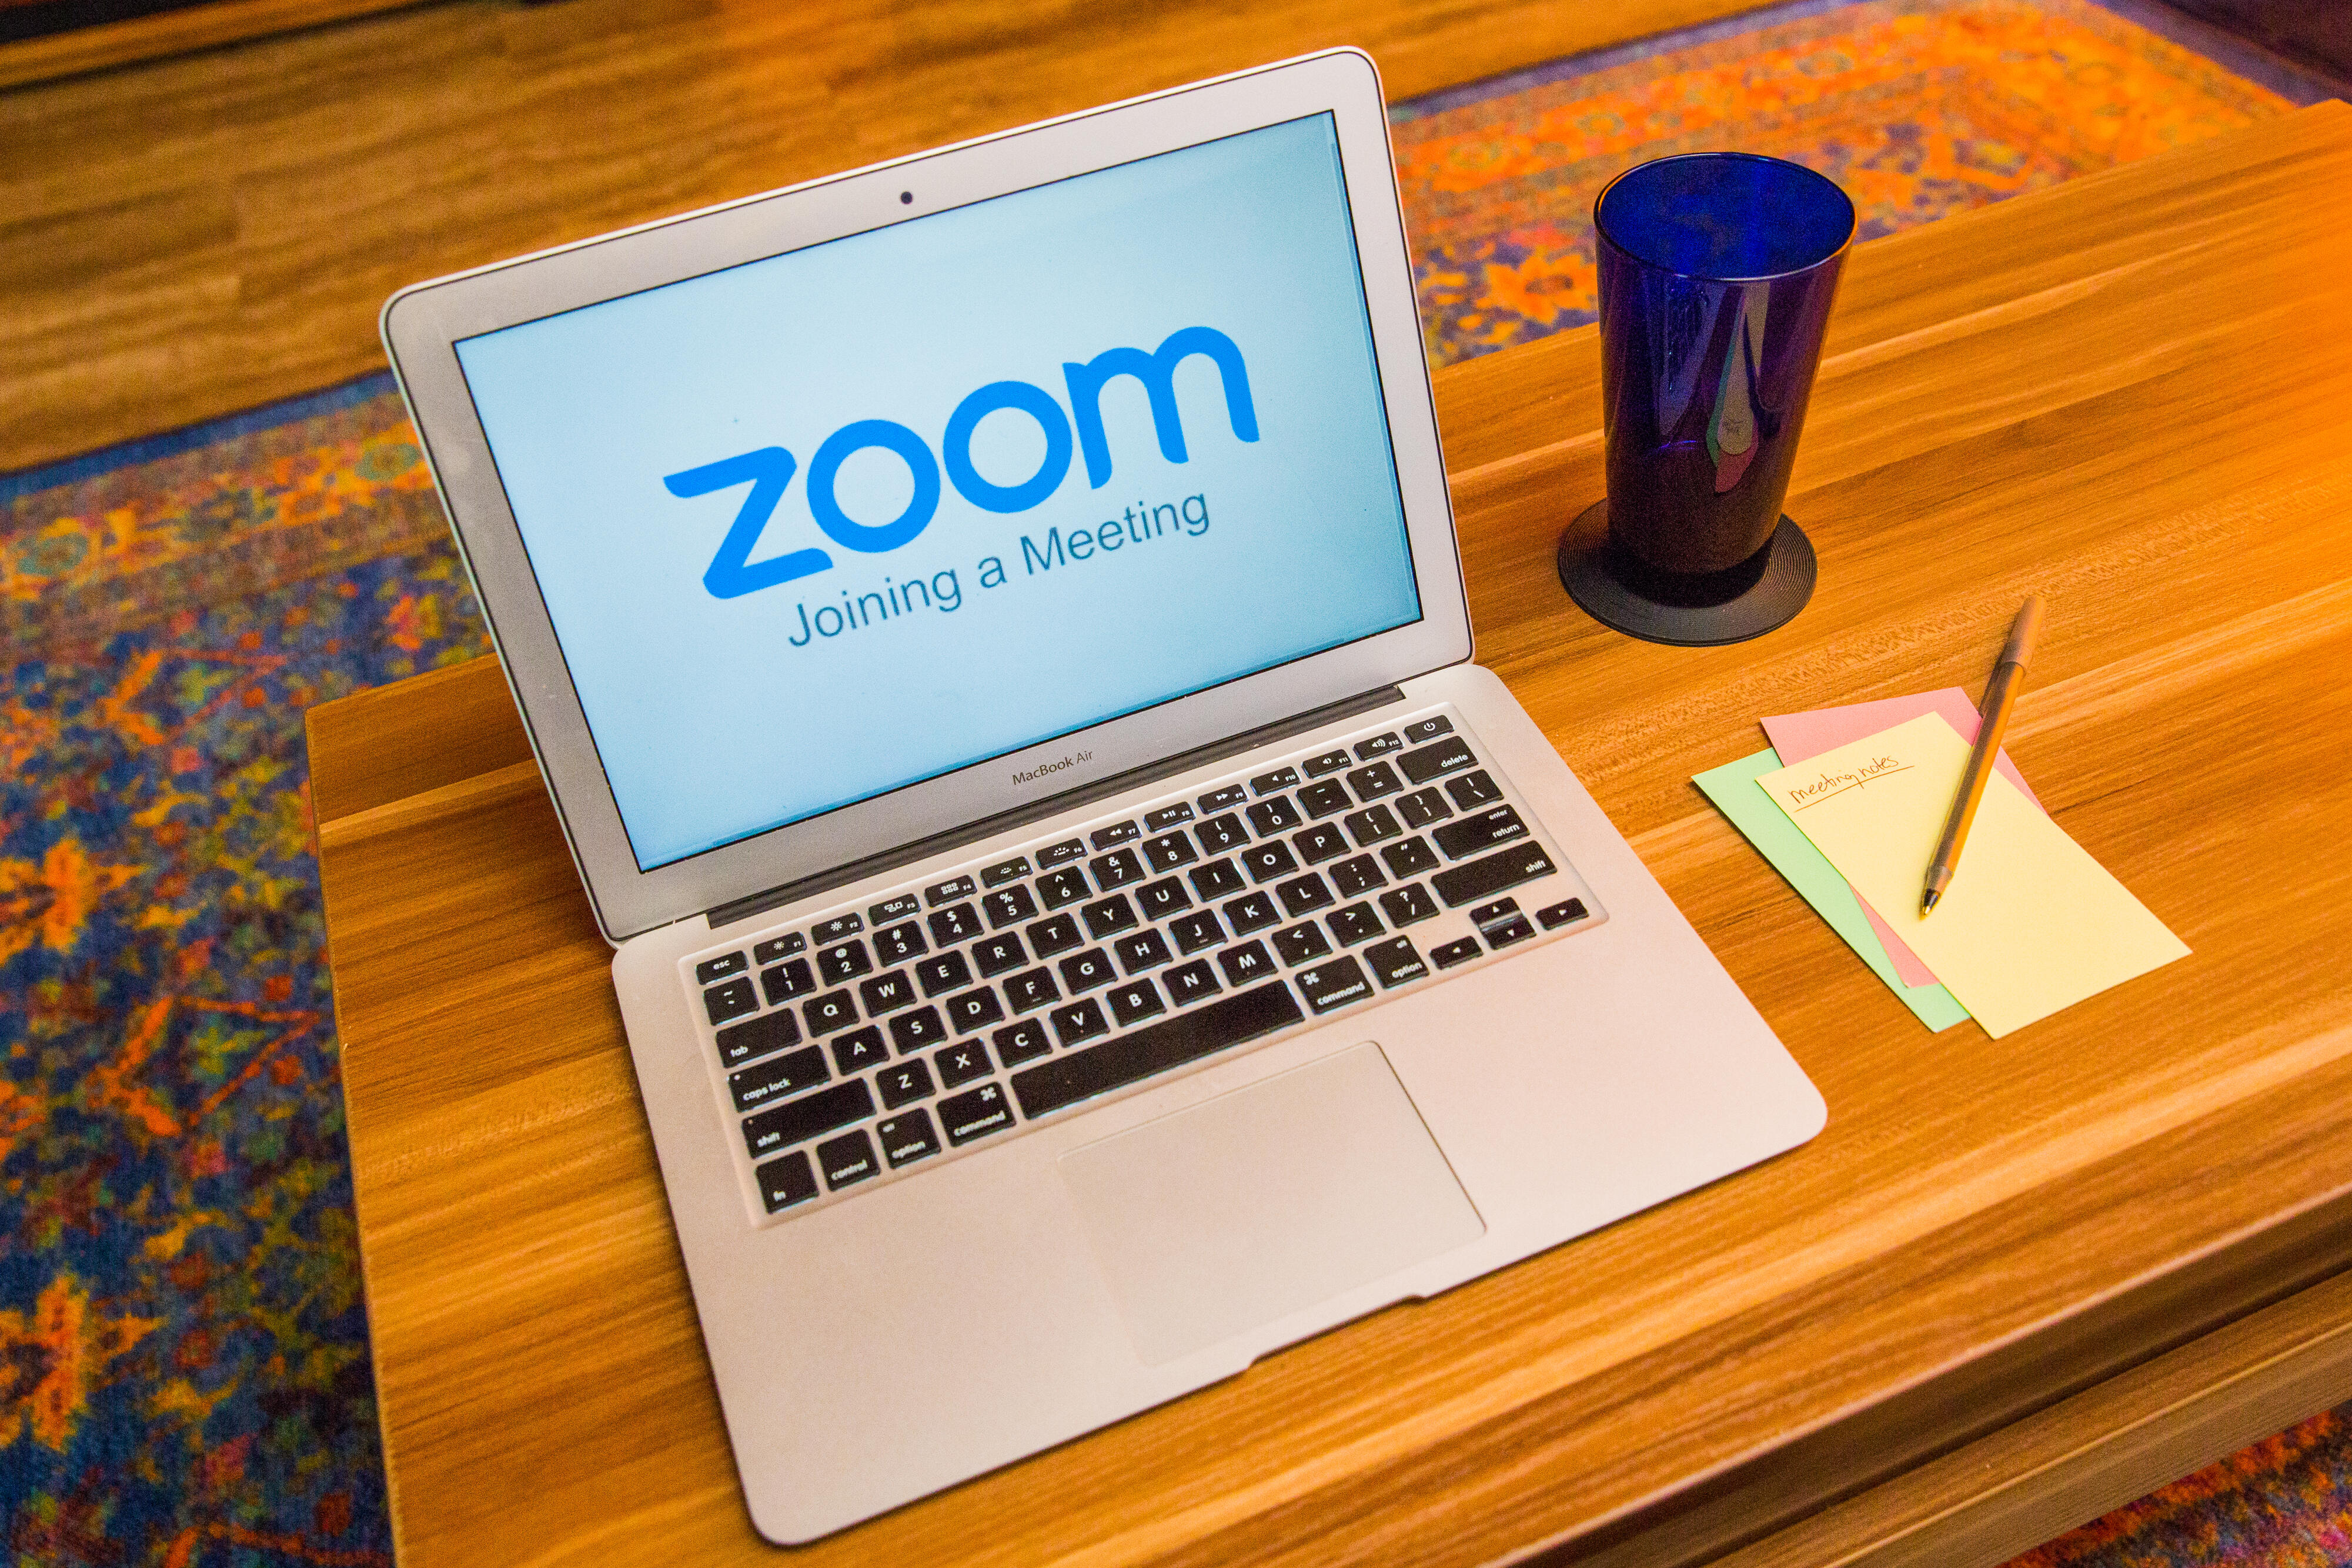 Zoom logo on a laptop screen